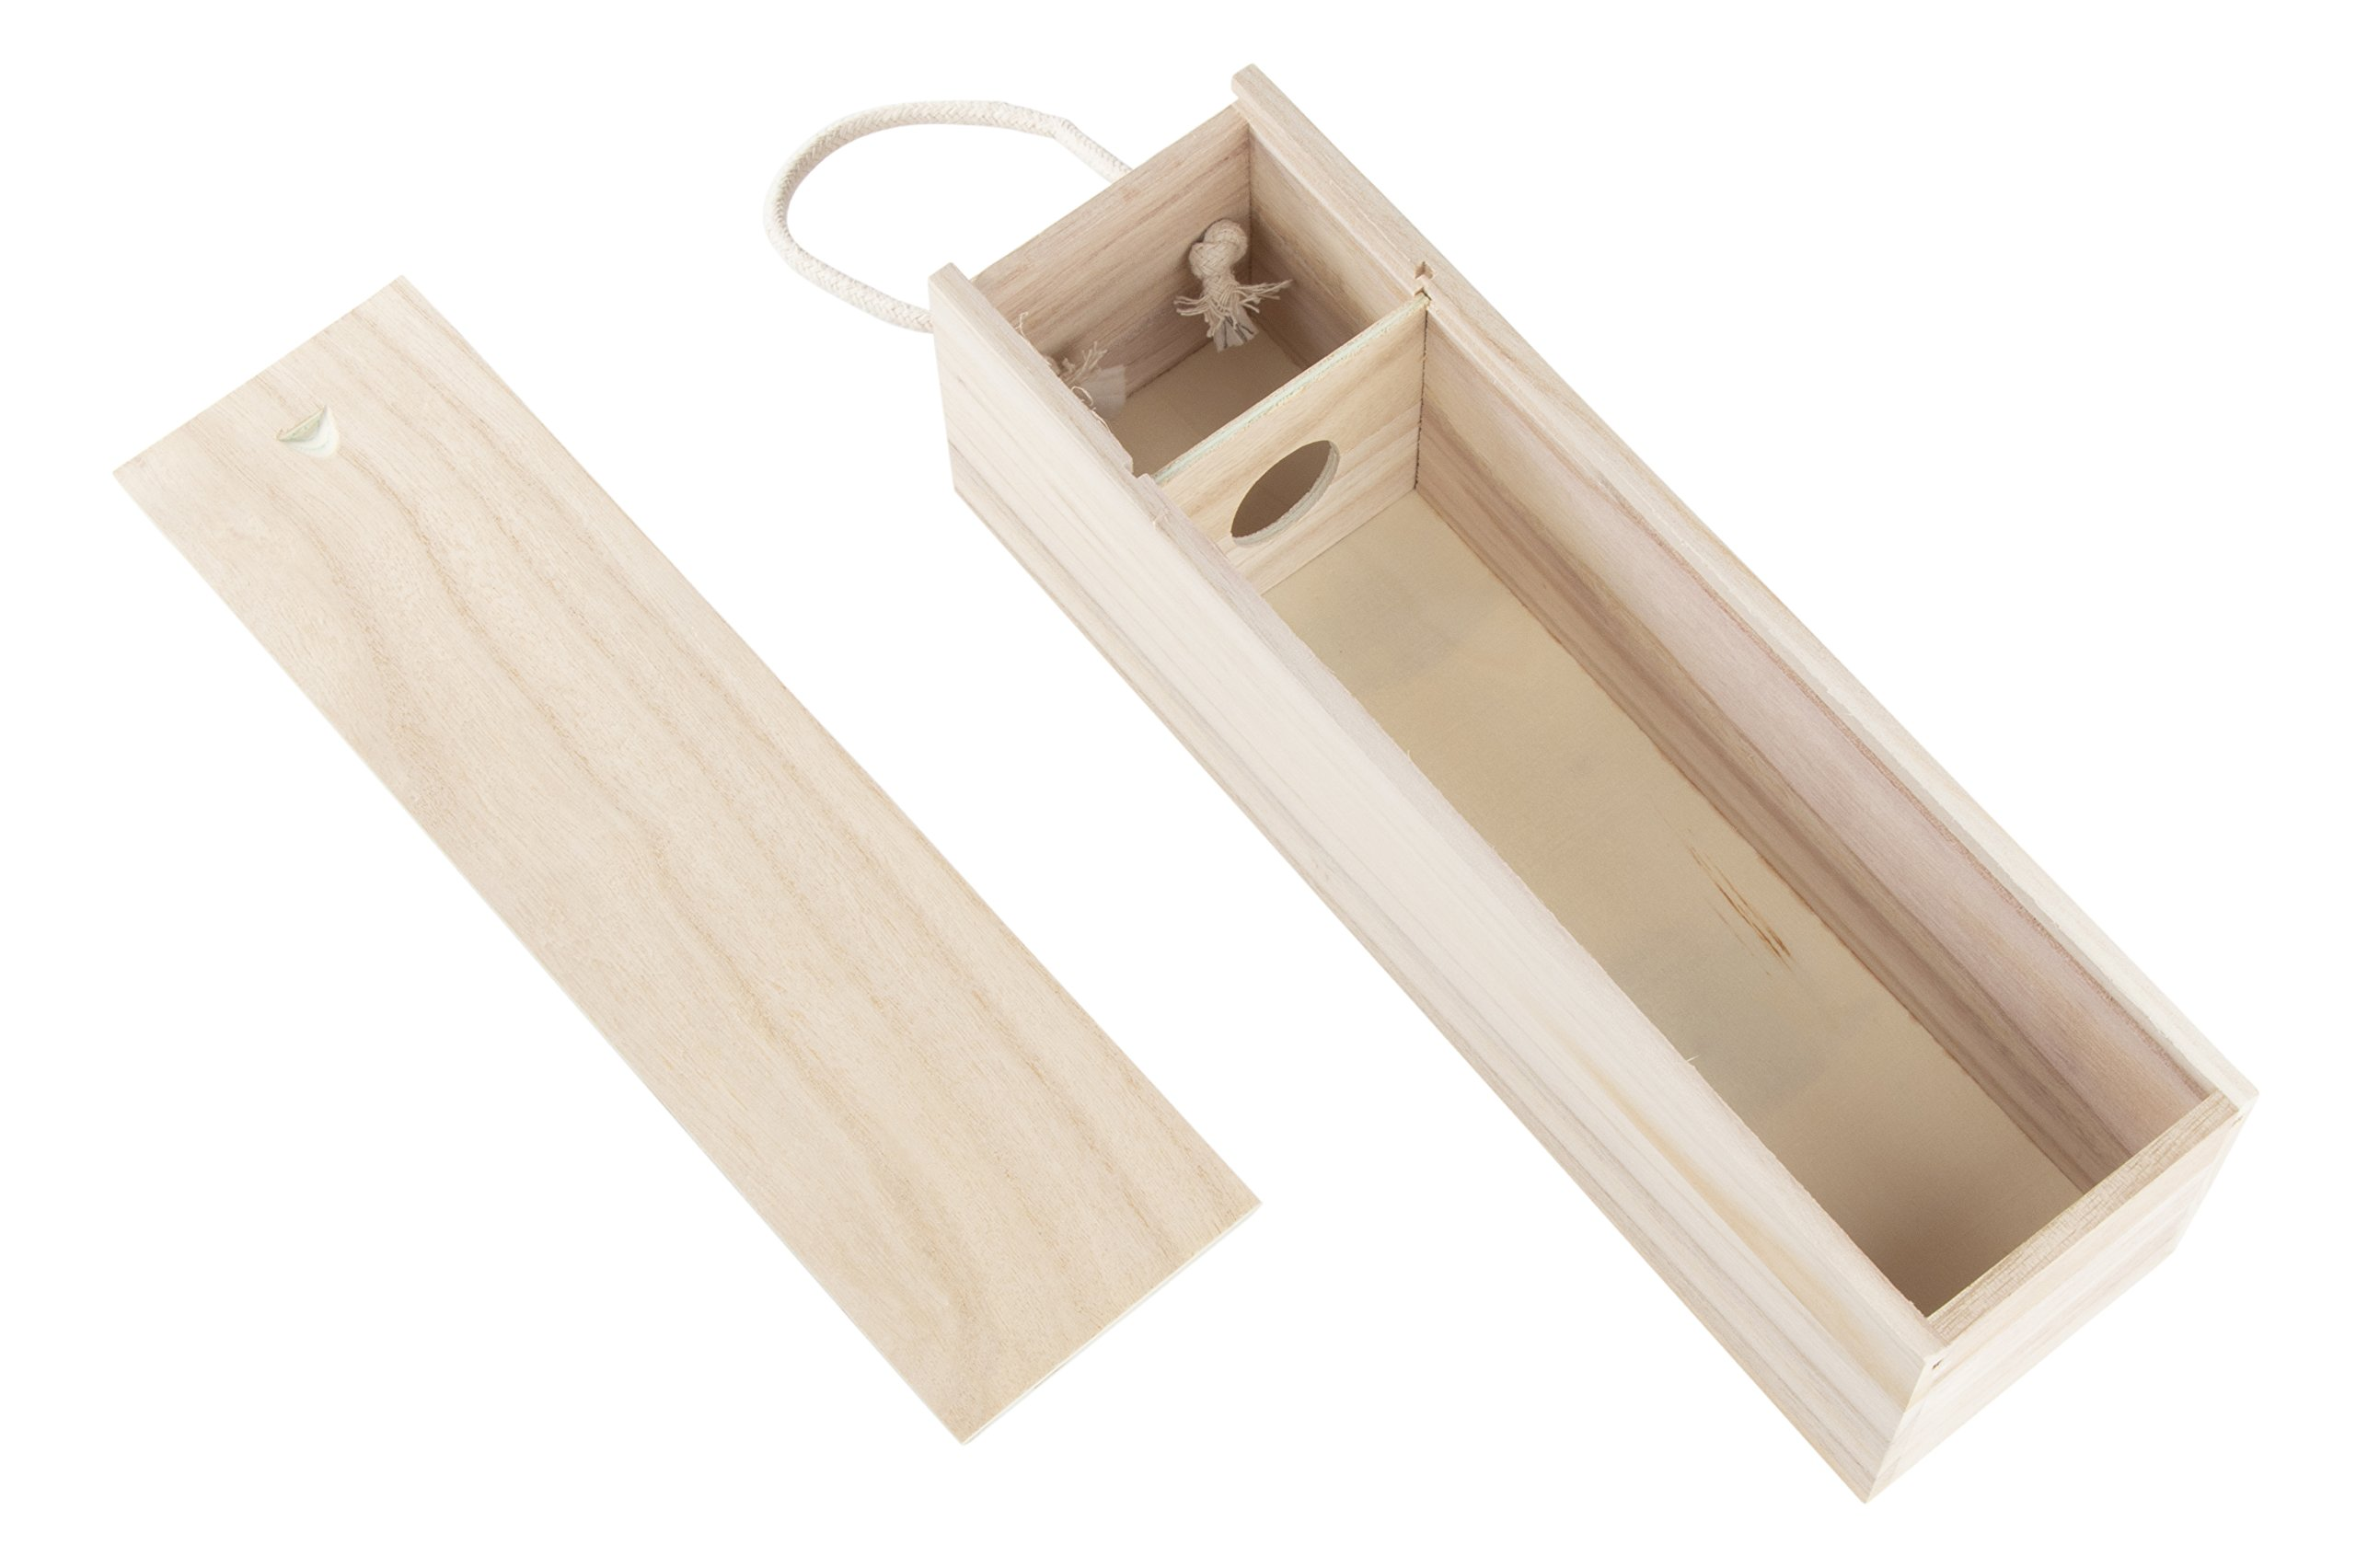 Juvale Wooden Wine Box - 2-Pack Single Wine Bottle Wood Storage Gift Box with Handle for Birthday Party, Housewarming, Wedding, Anniversary, 13.875 x 3.875 x 4 Inches by Juvale (Image #6)